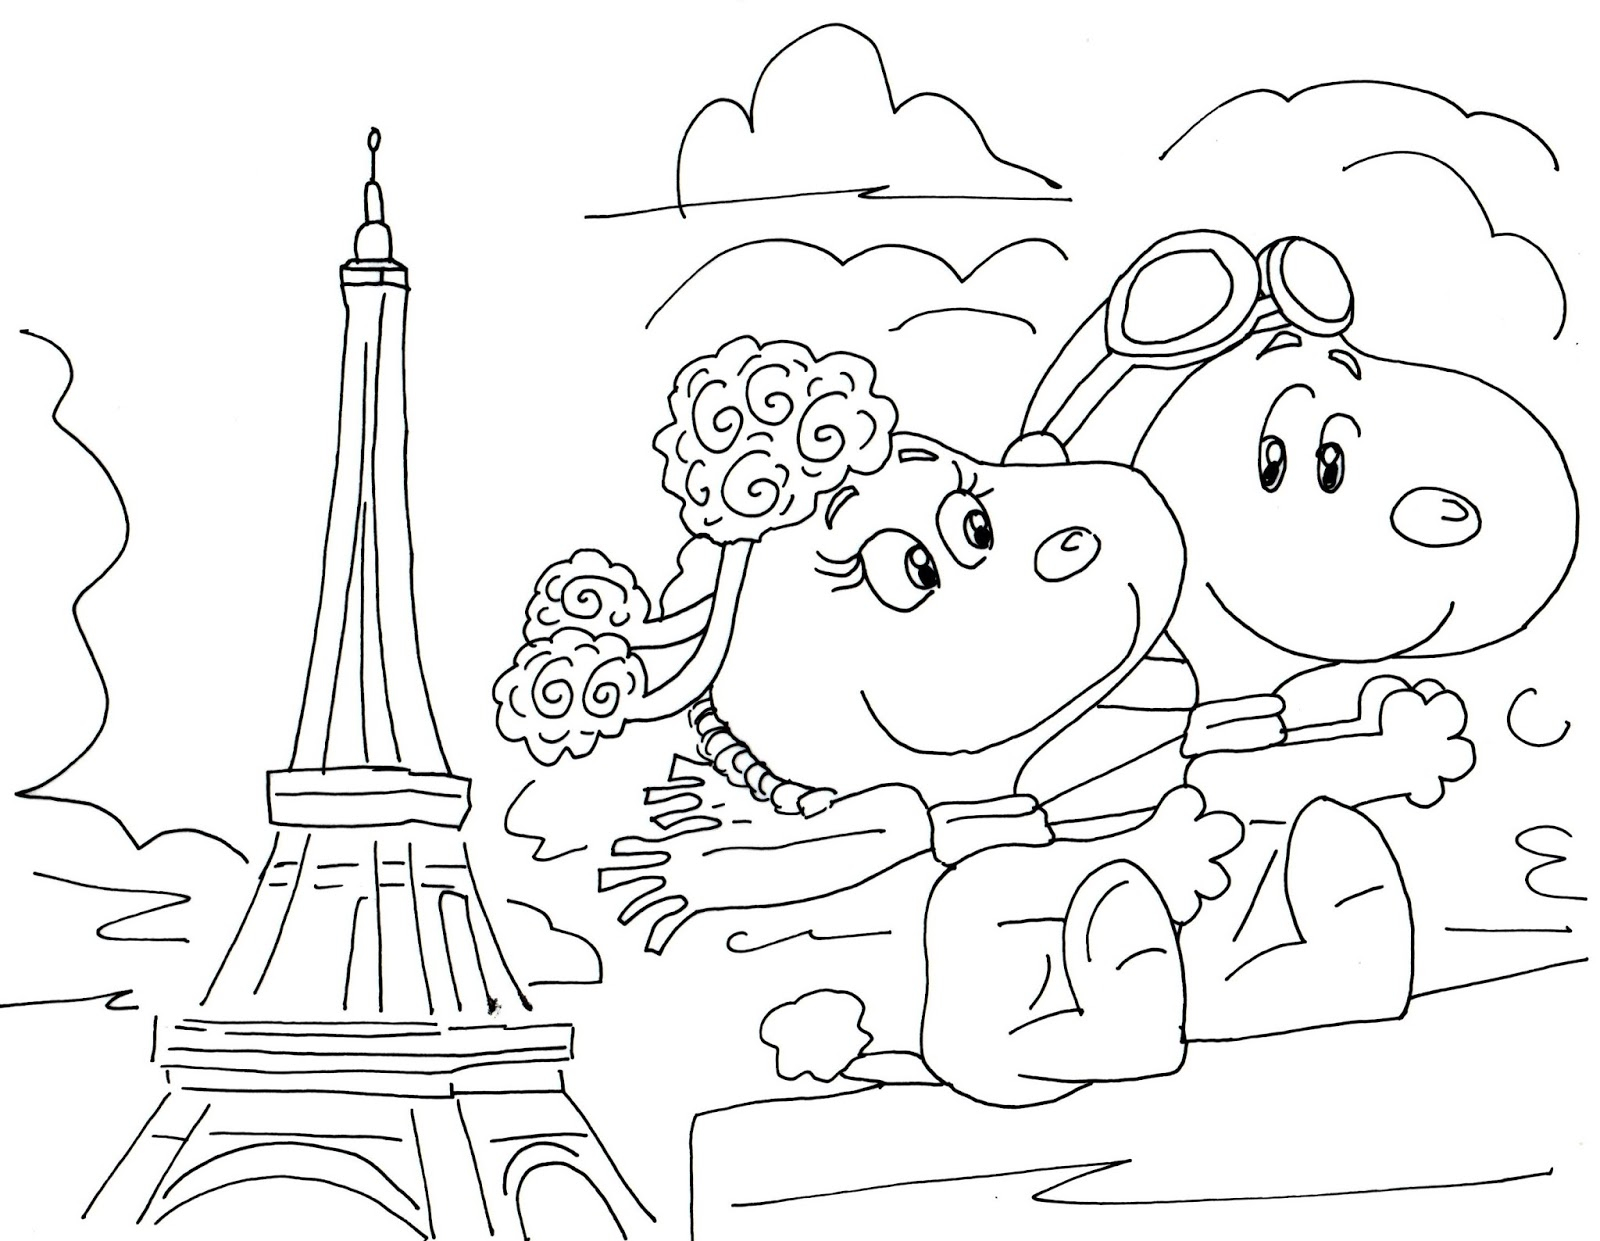 Snoopy And Woodstock Coloring Pages Peanuts Coloring Pages Best Free Coloring Pages Site